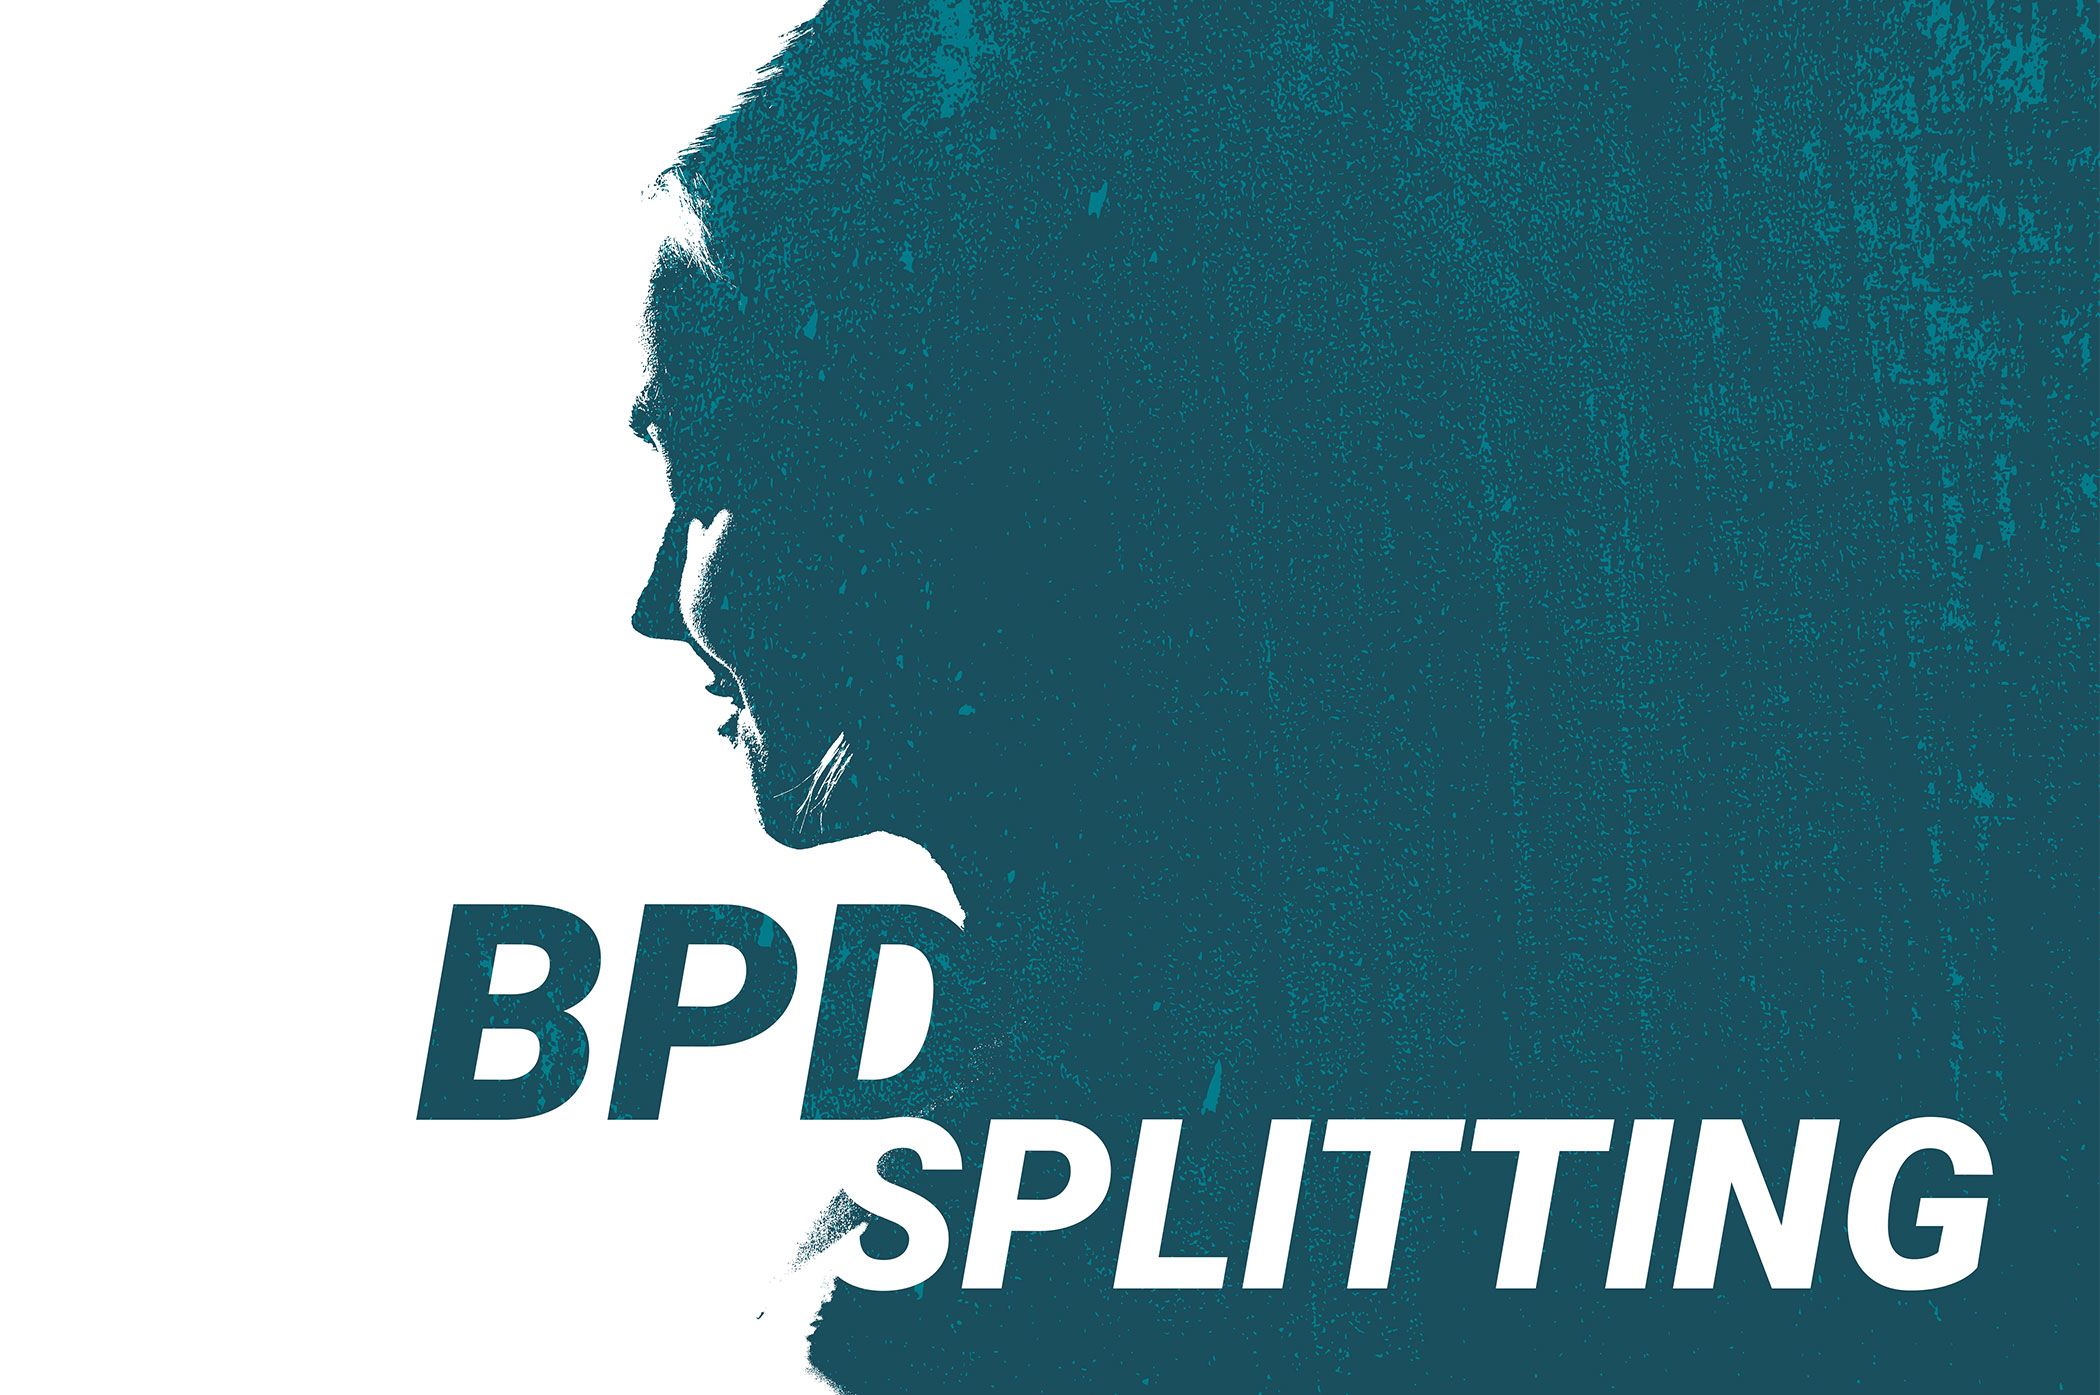 BPD Splitting - OPI Residential Treatment Center for Young